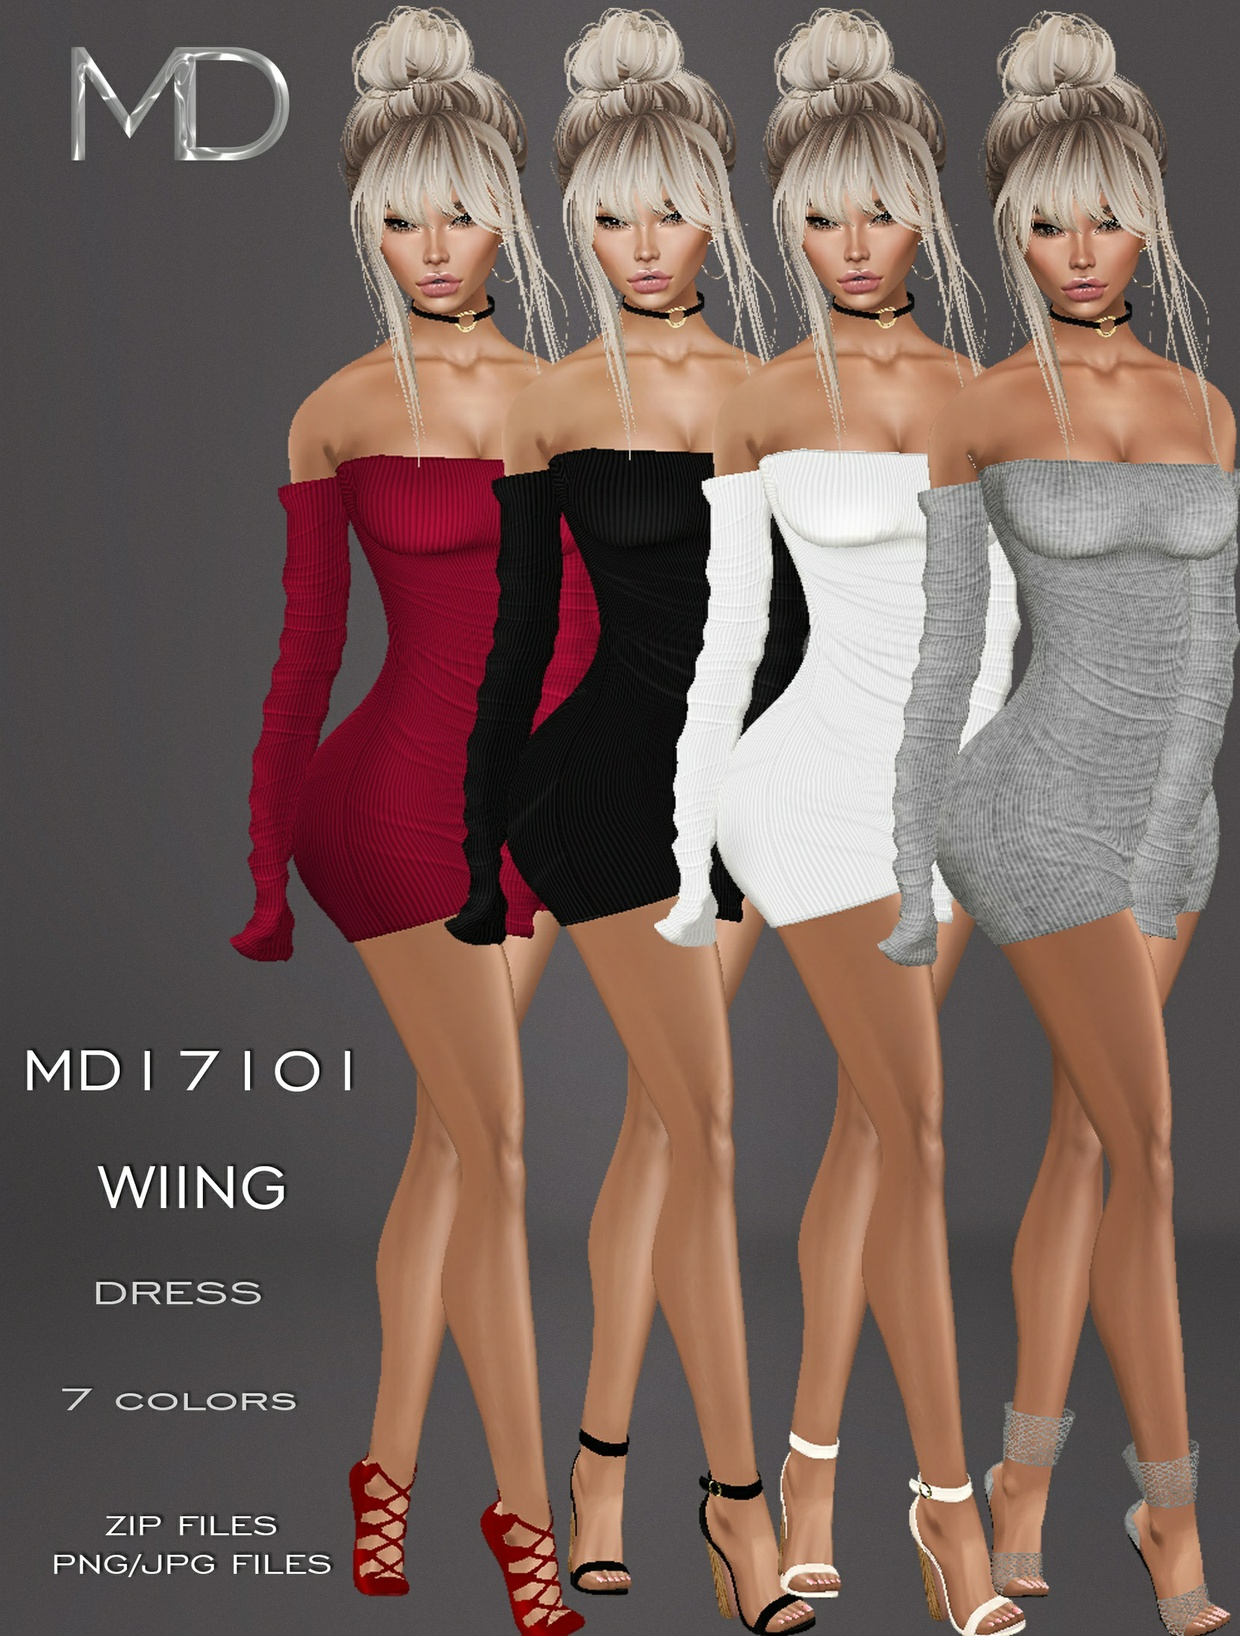 MD17101 - WIING